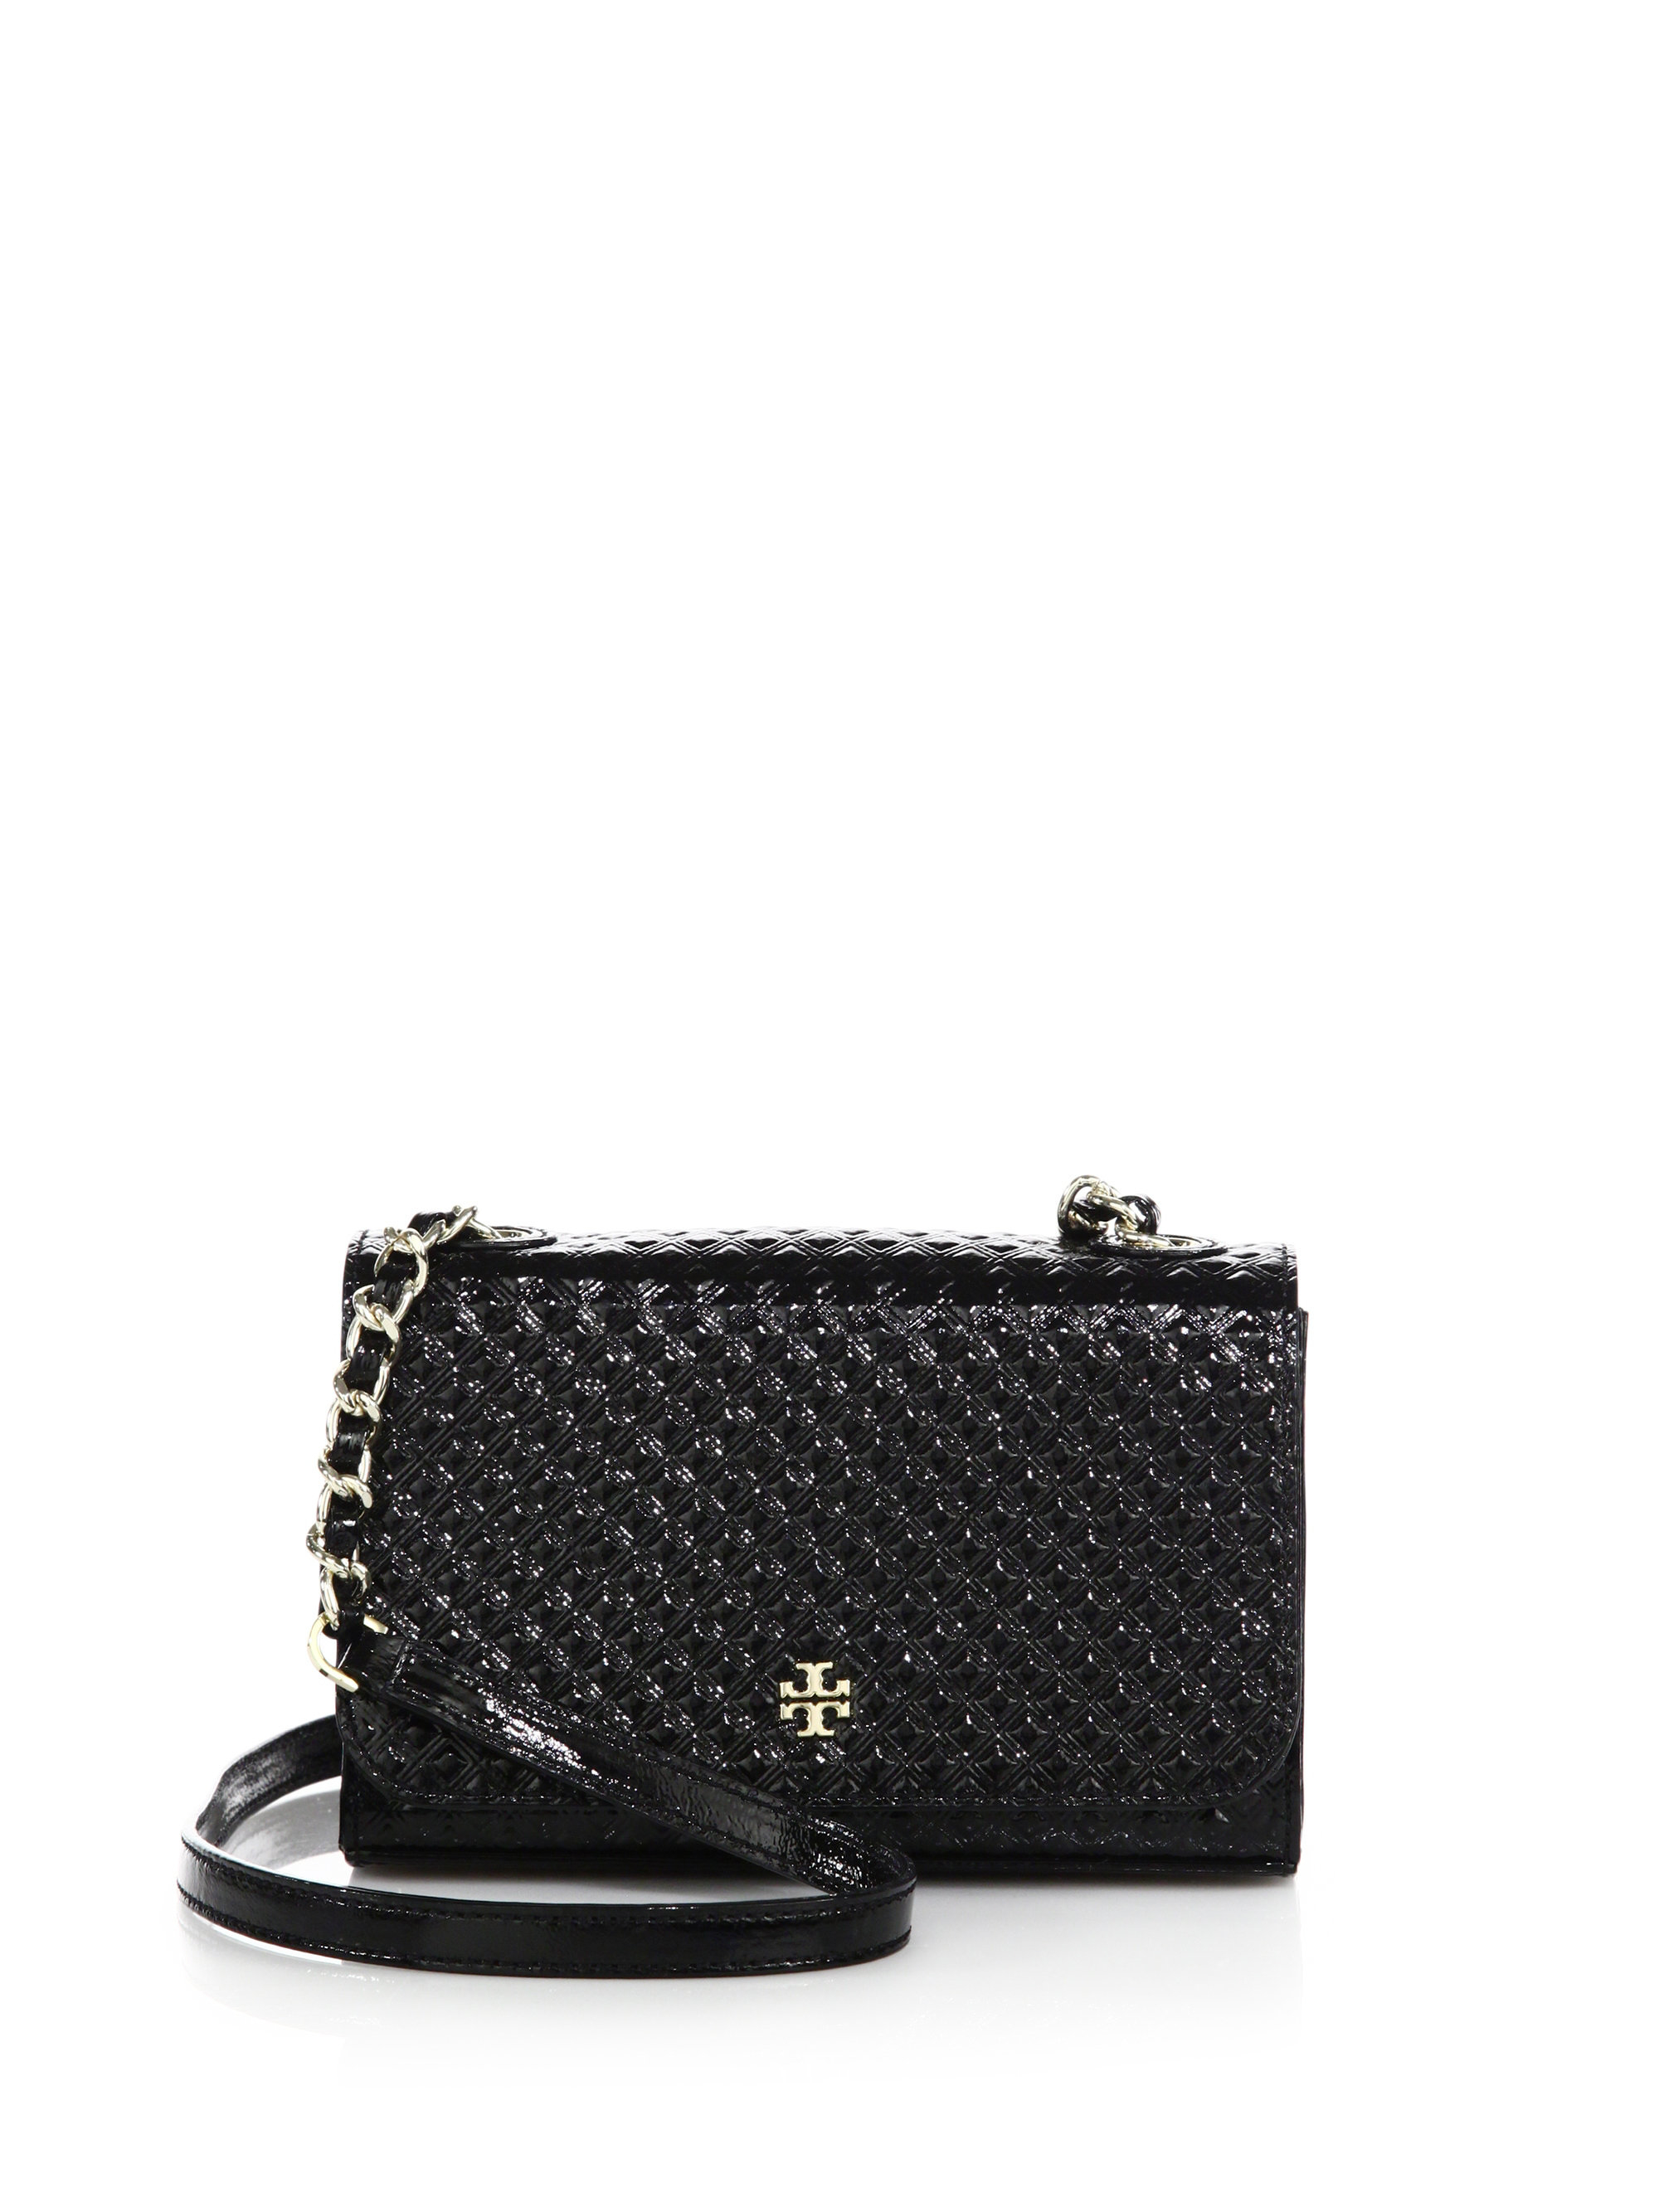 Lyst - Tory Burch Marion Shrunken Embossed Patent Leather Crossbody ... dd2530d3527a2